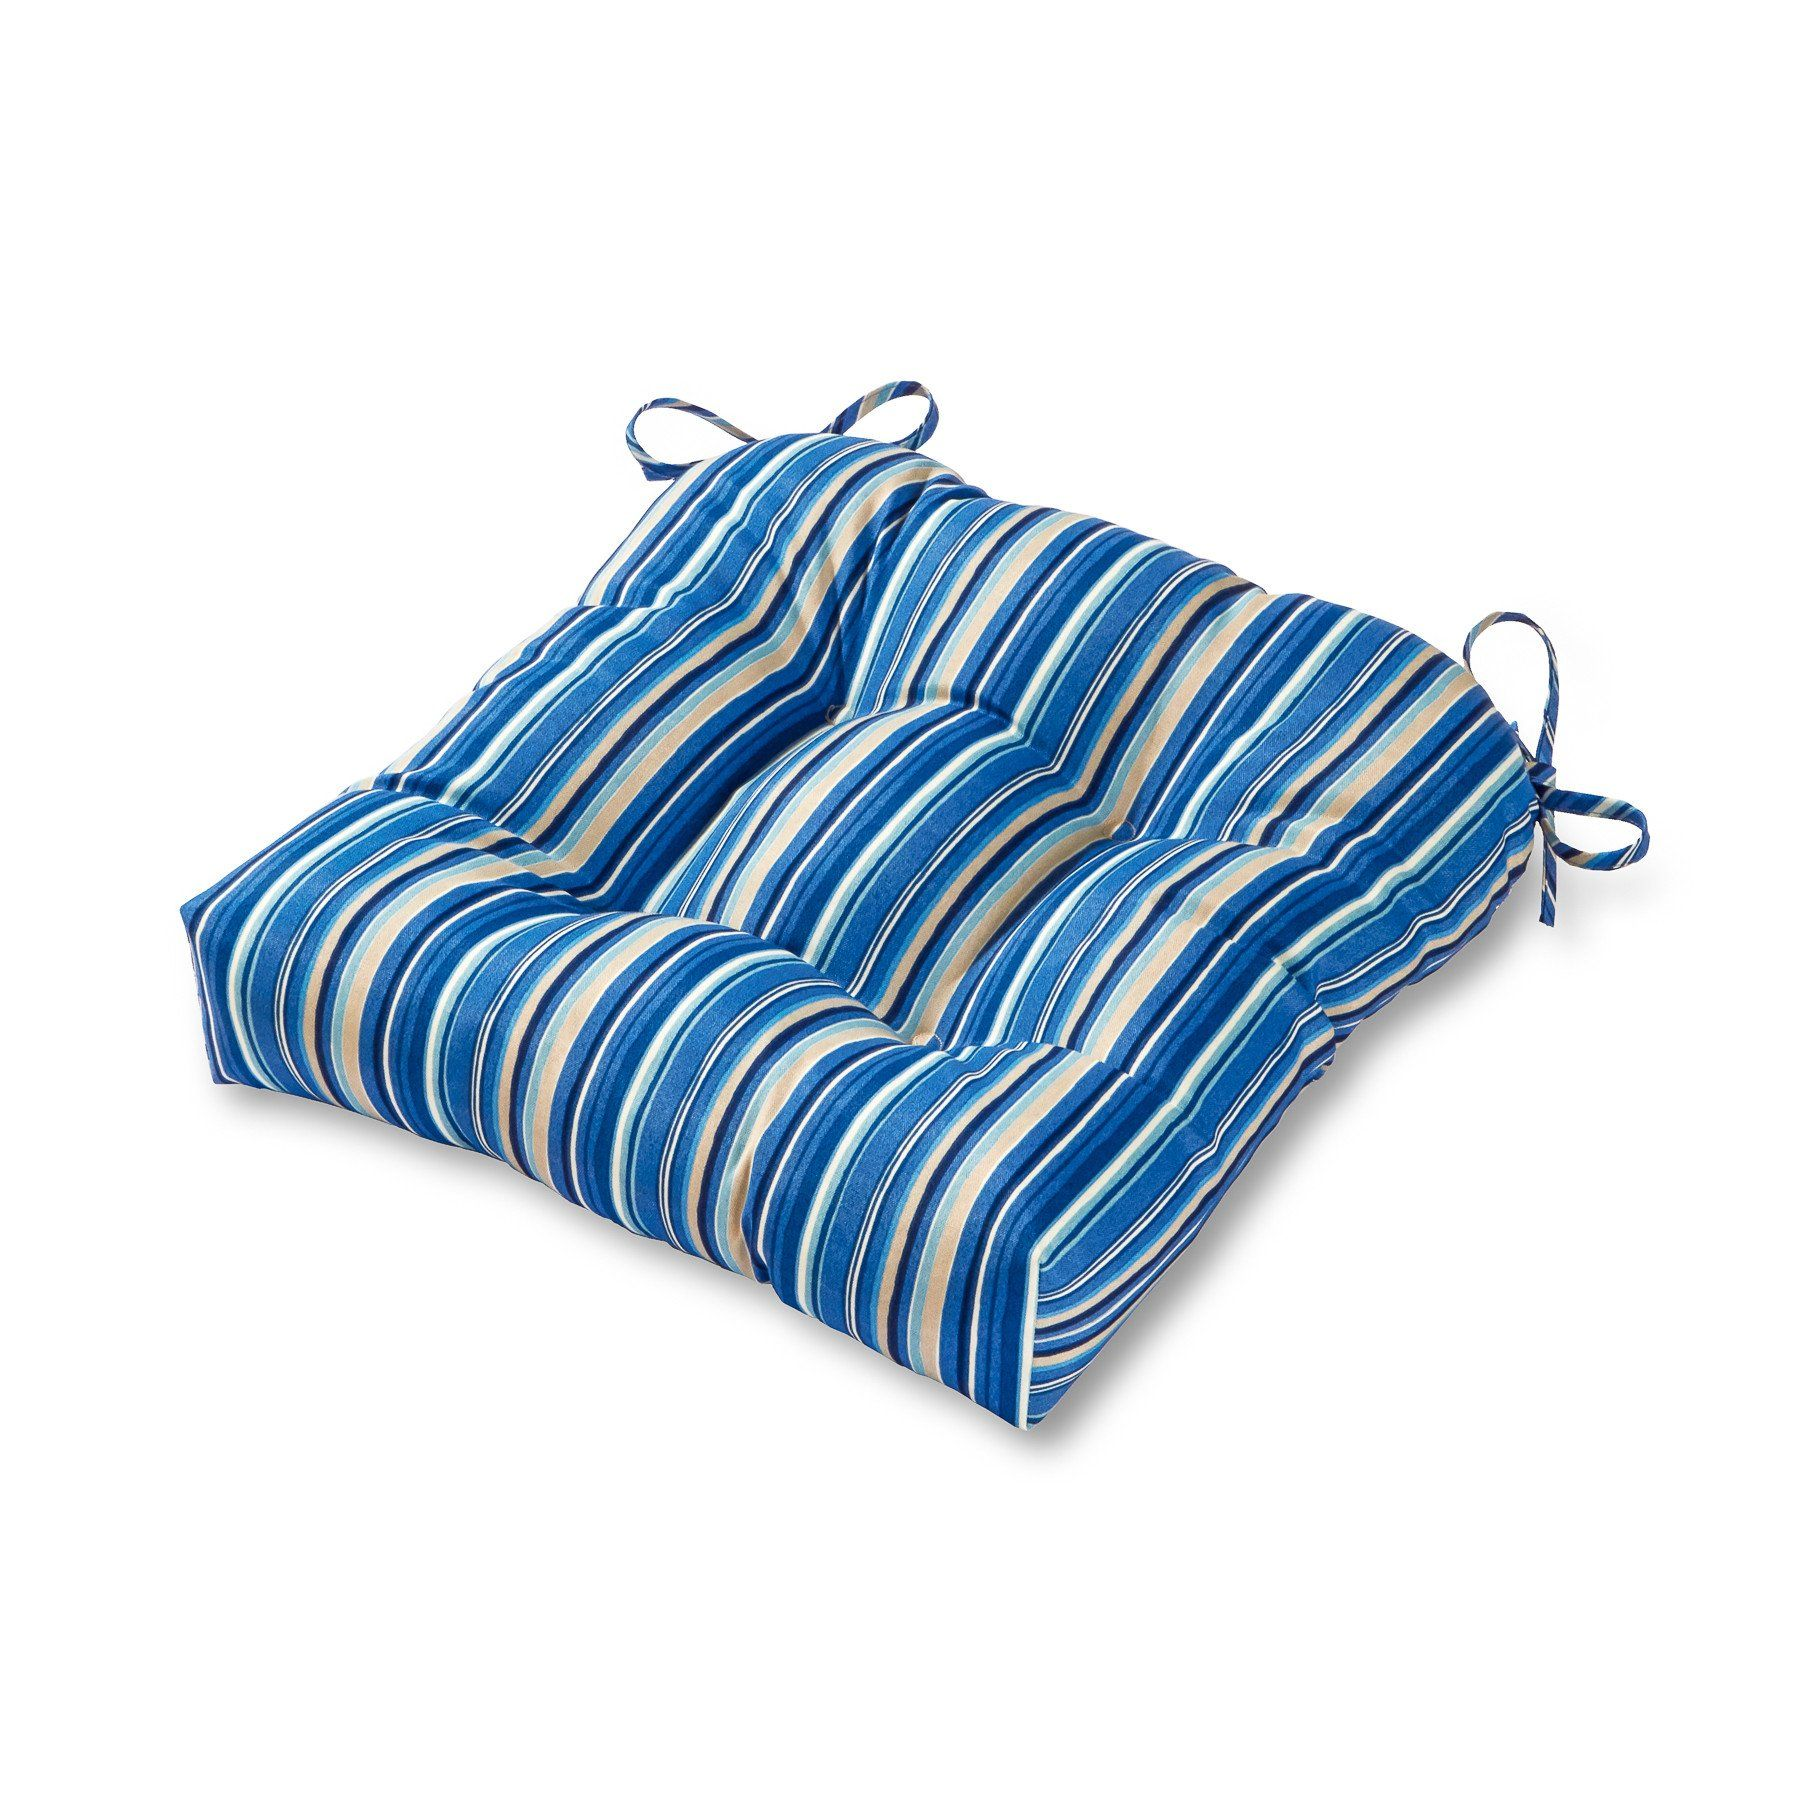 Coastal collection 20 outdoor seat cushions outdoor